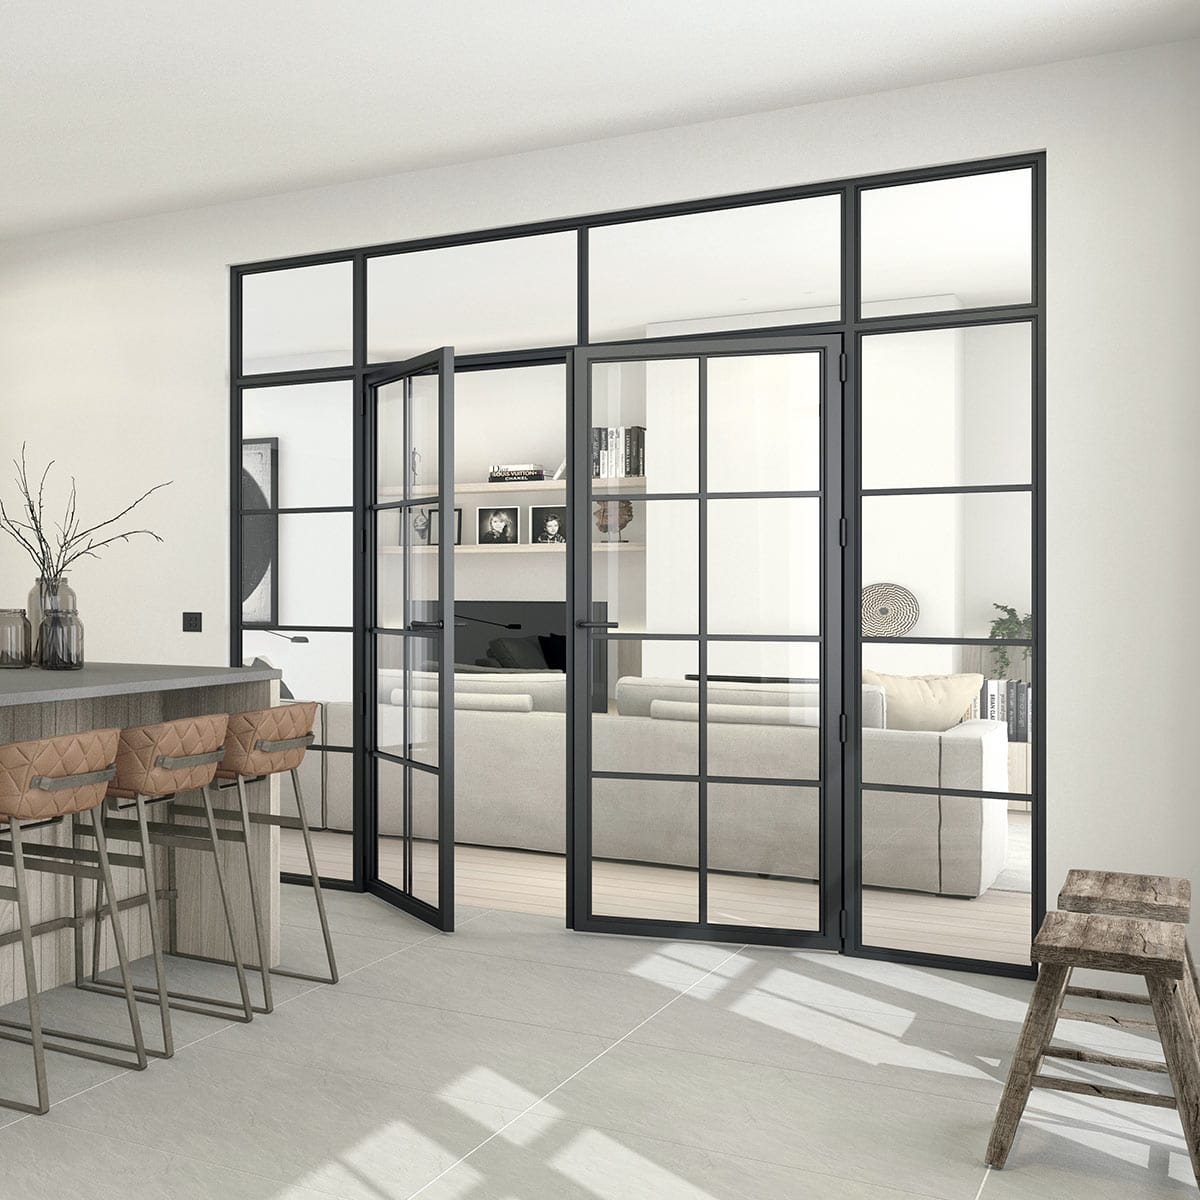 Modular steel door in irish kitchen